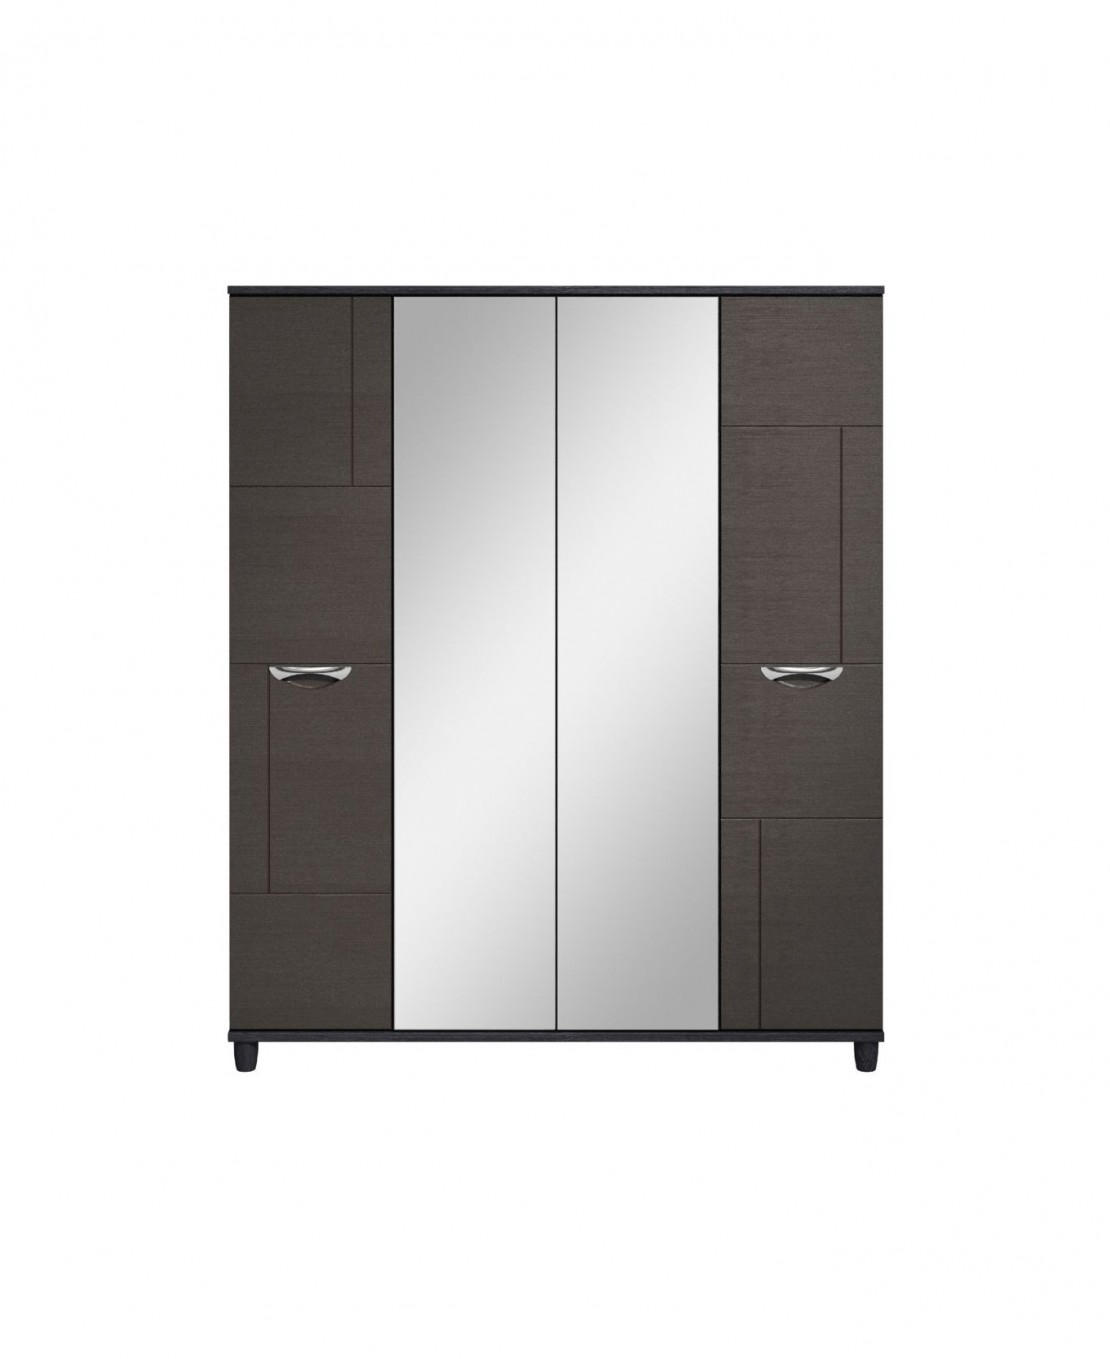 /_images/product-photos/kt-furniture-moda-graphite-4-door-centre-mirrored-robe-a.jpg